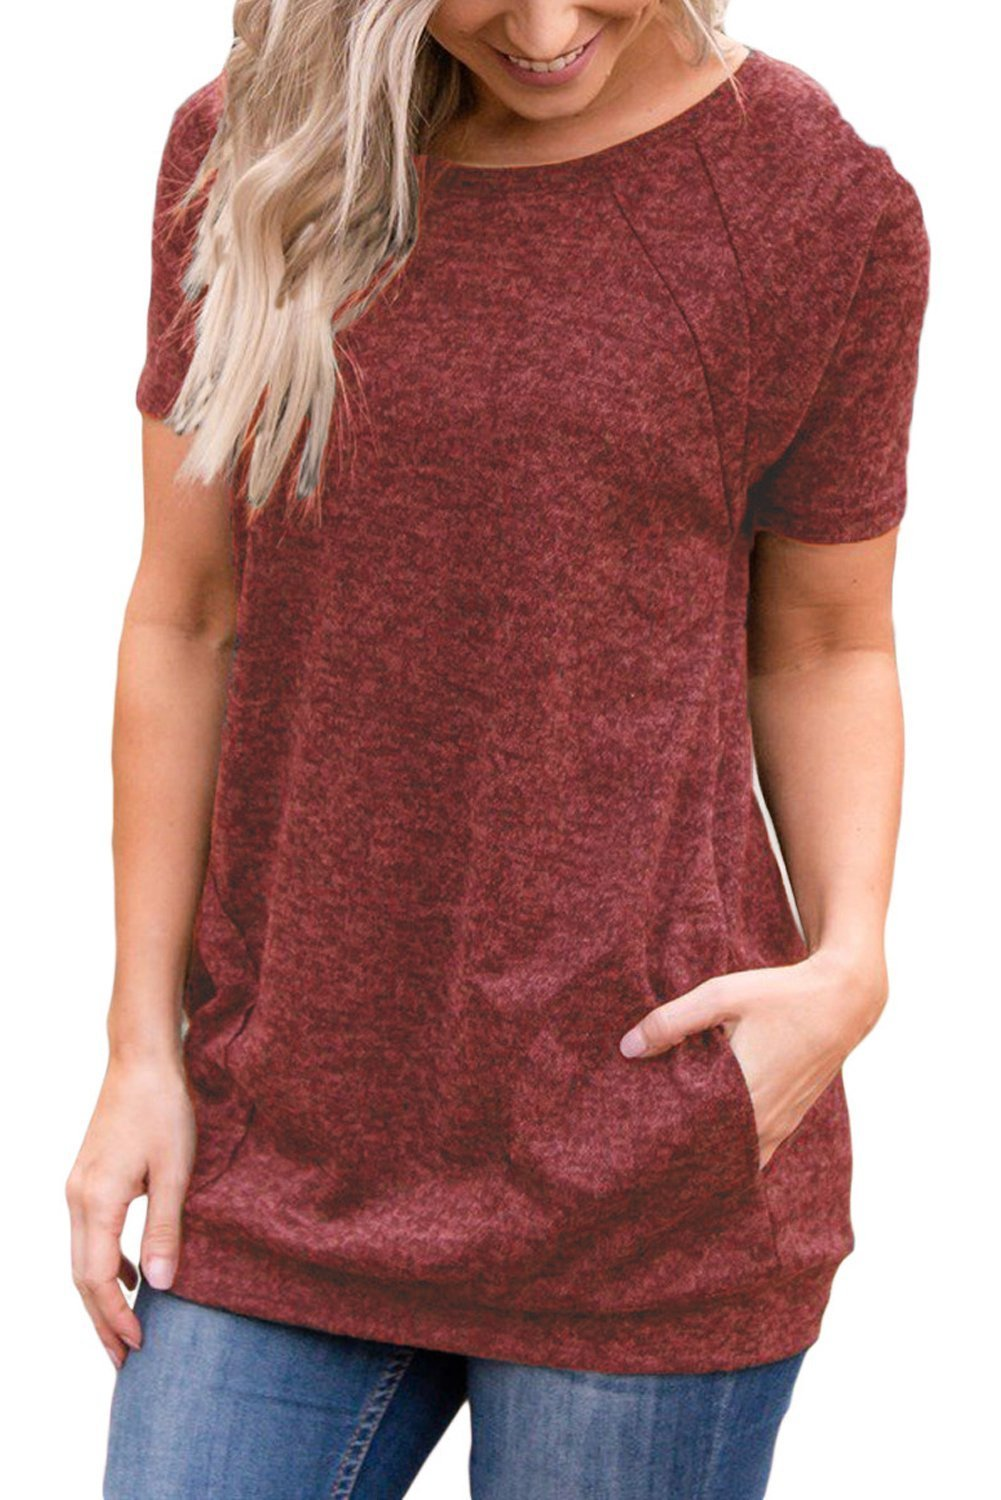 Uniboutique Womens Amazon Sexy Summer Short Sleeve Round Neck Solid Tunics T Shirts Tops Blouses with Pockets Red Wine Medium